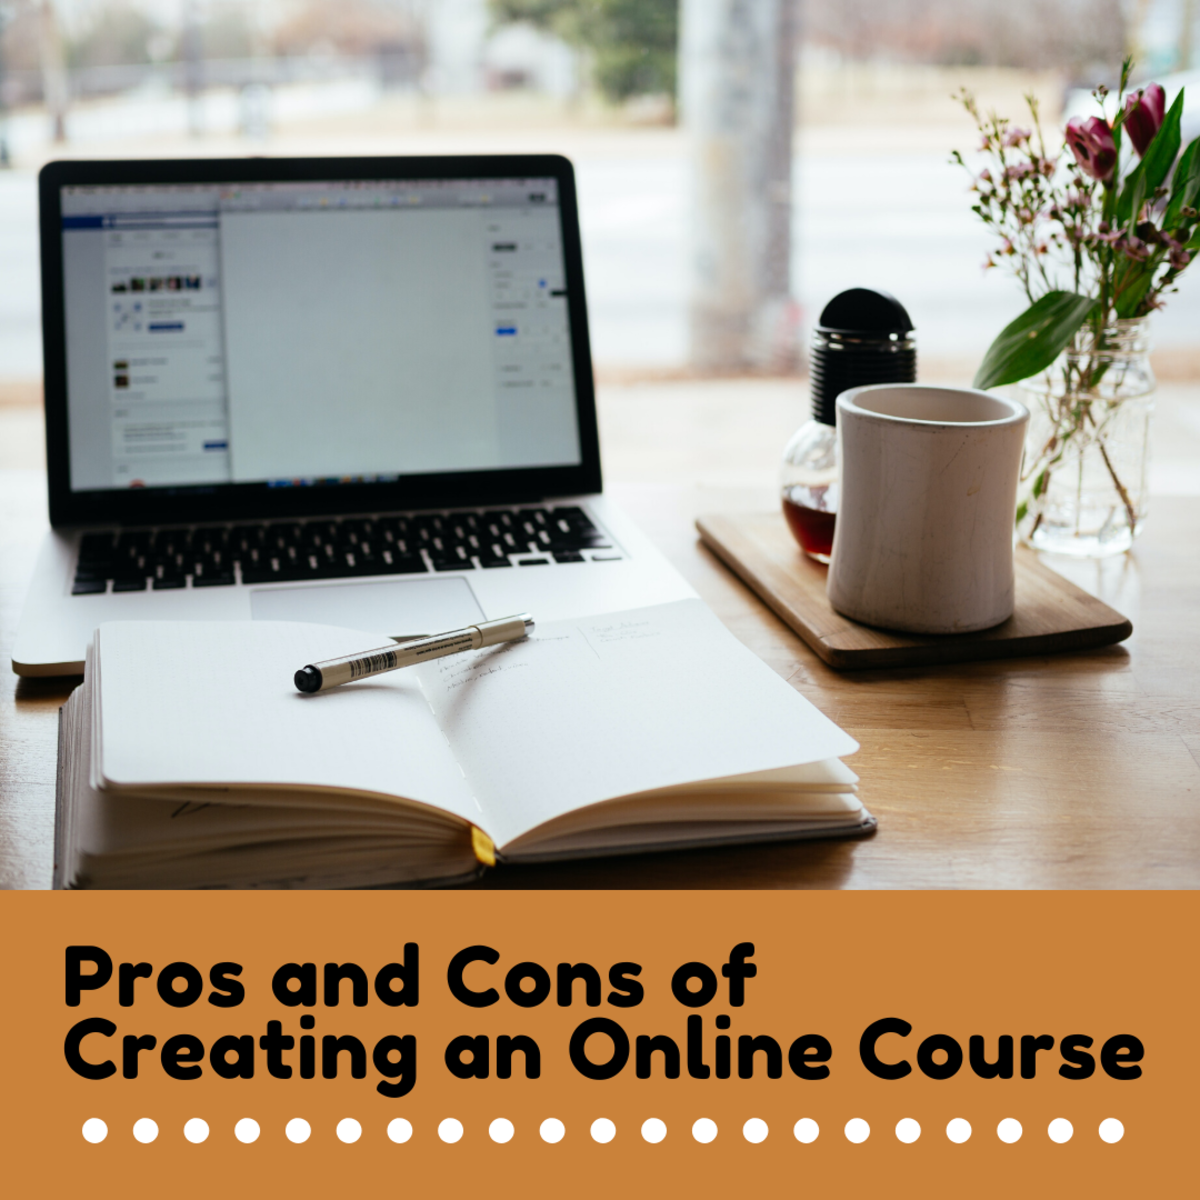 Pros and Cons of Creating an Online Course for a Coaching or Consulting Business